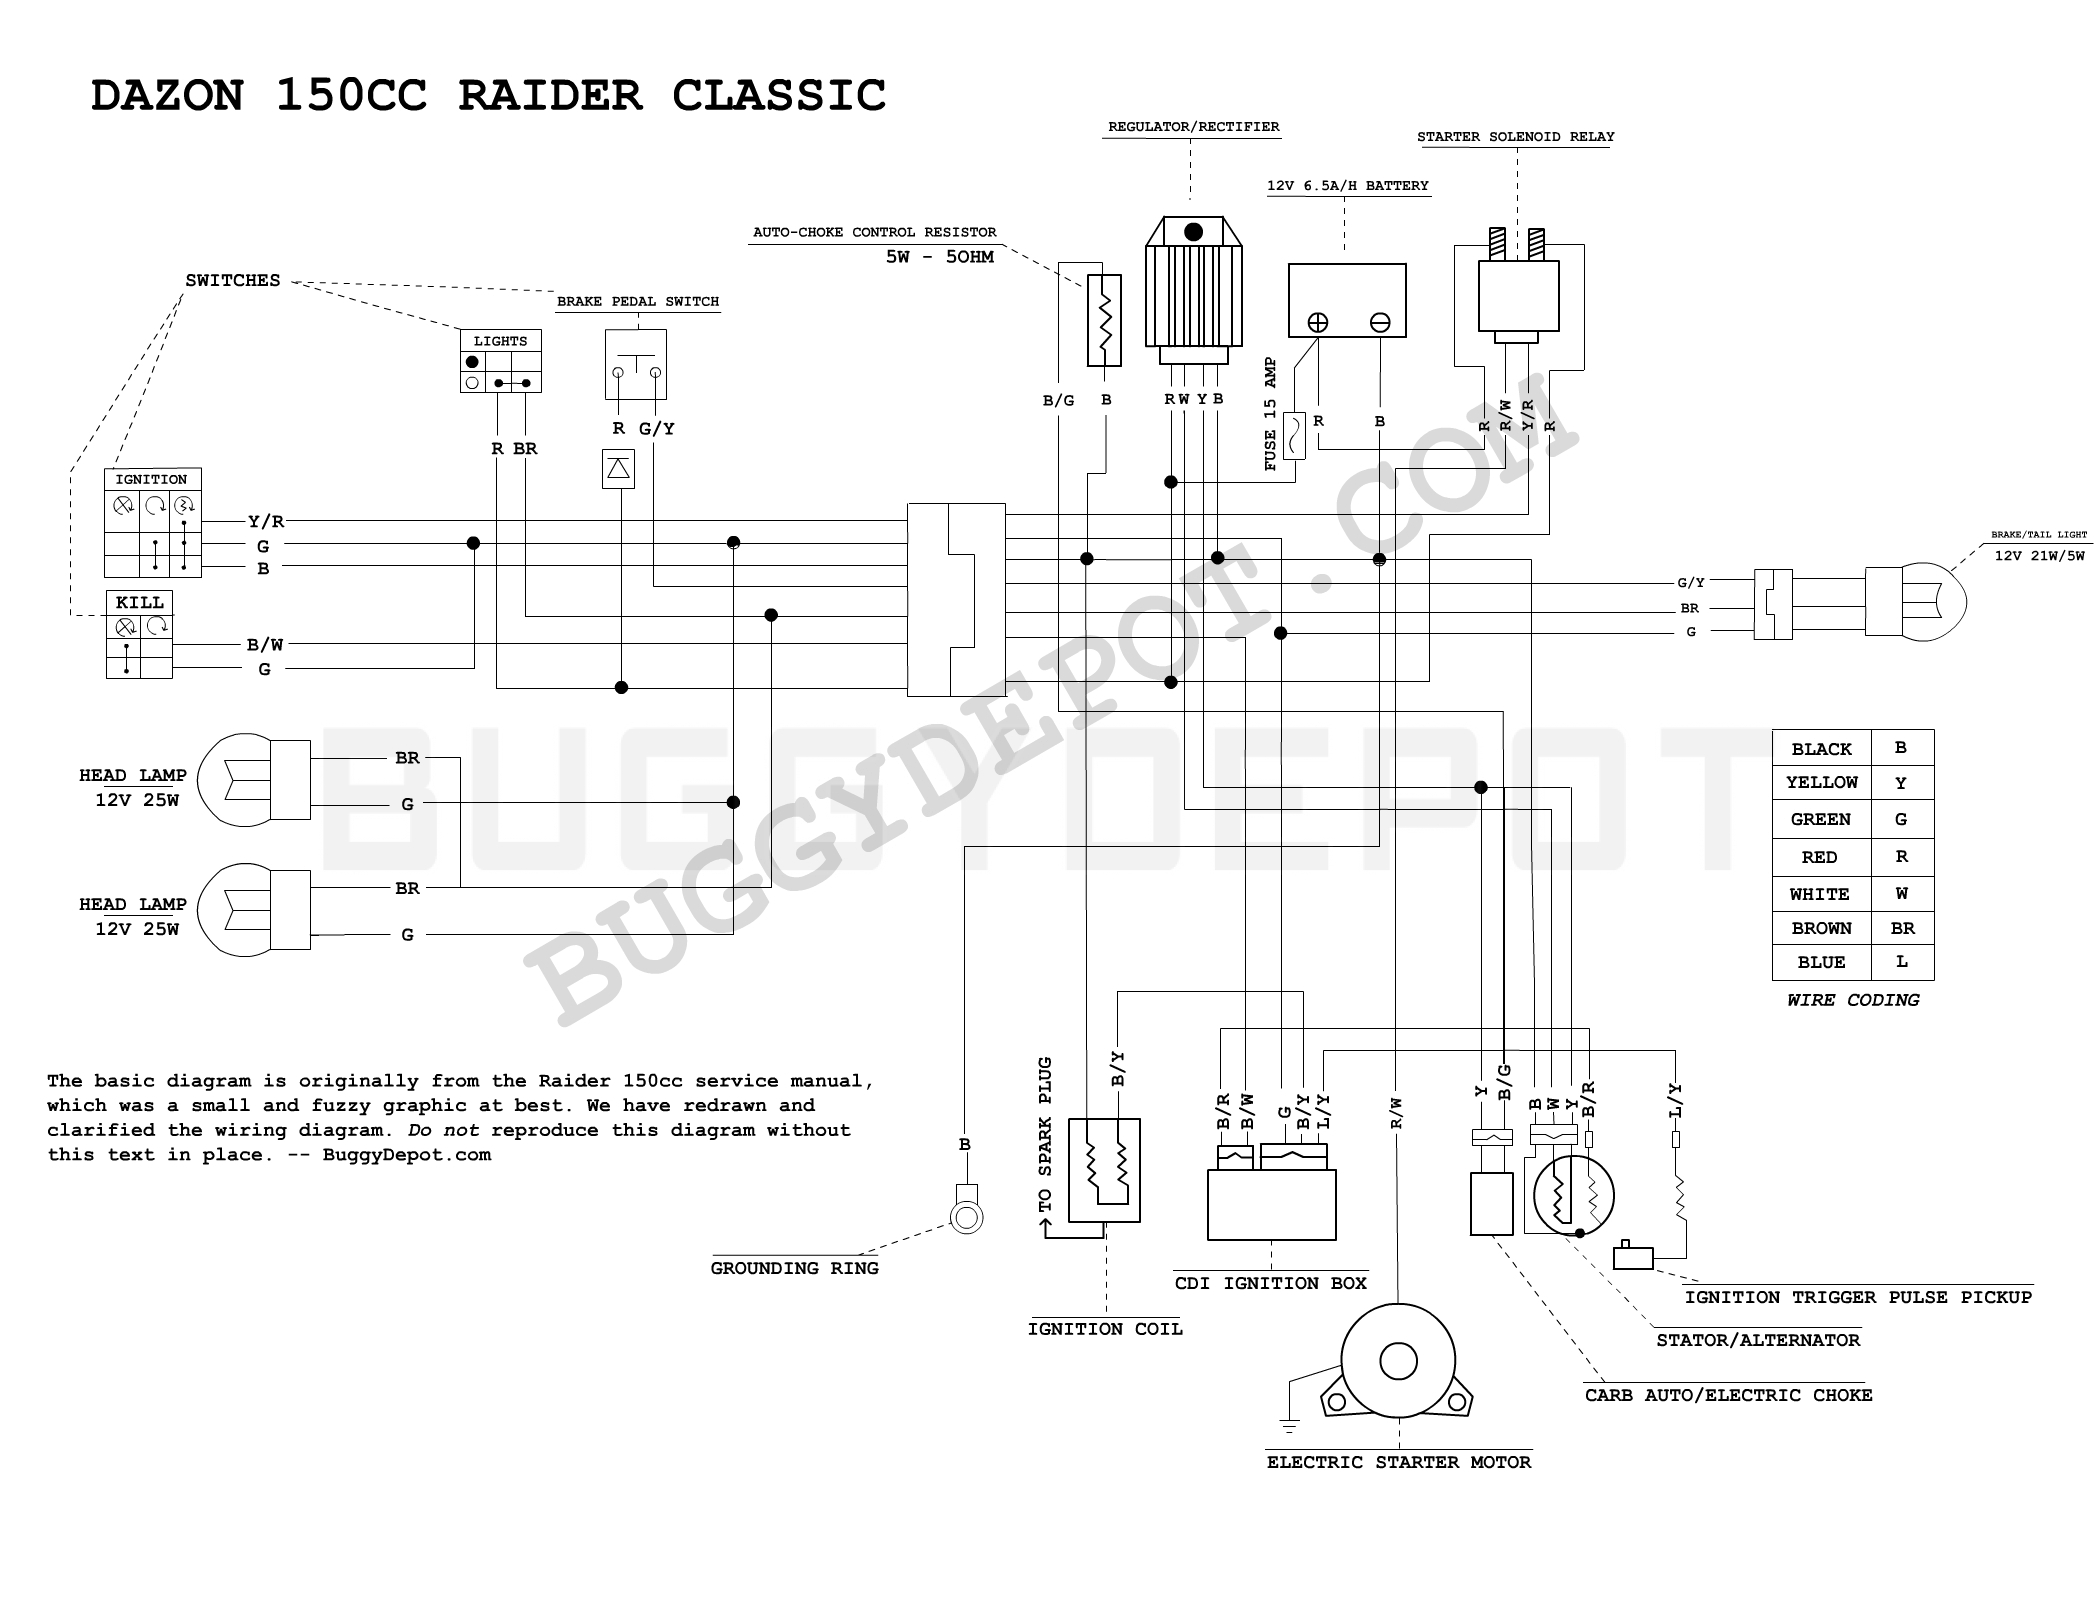 article_33_1278205207 dazon raider classic wiring diagram buggy depot technical center 150cc engine wiring diagram at honlapkeszites.co